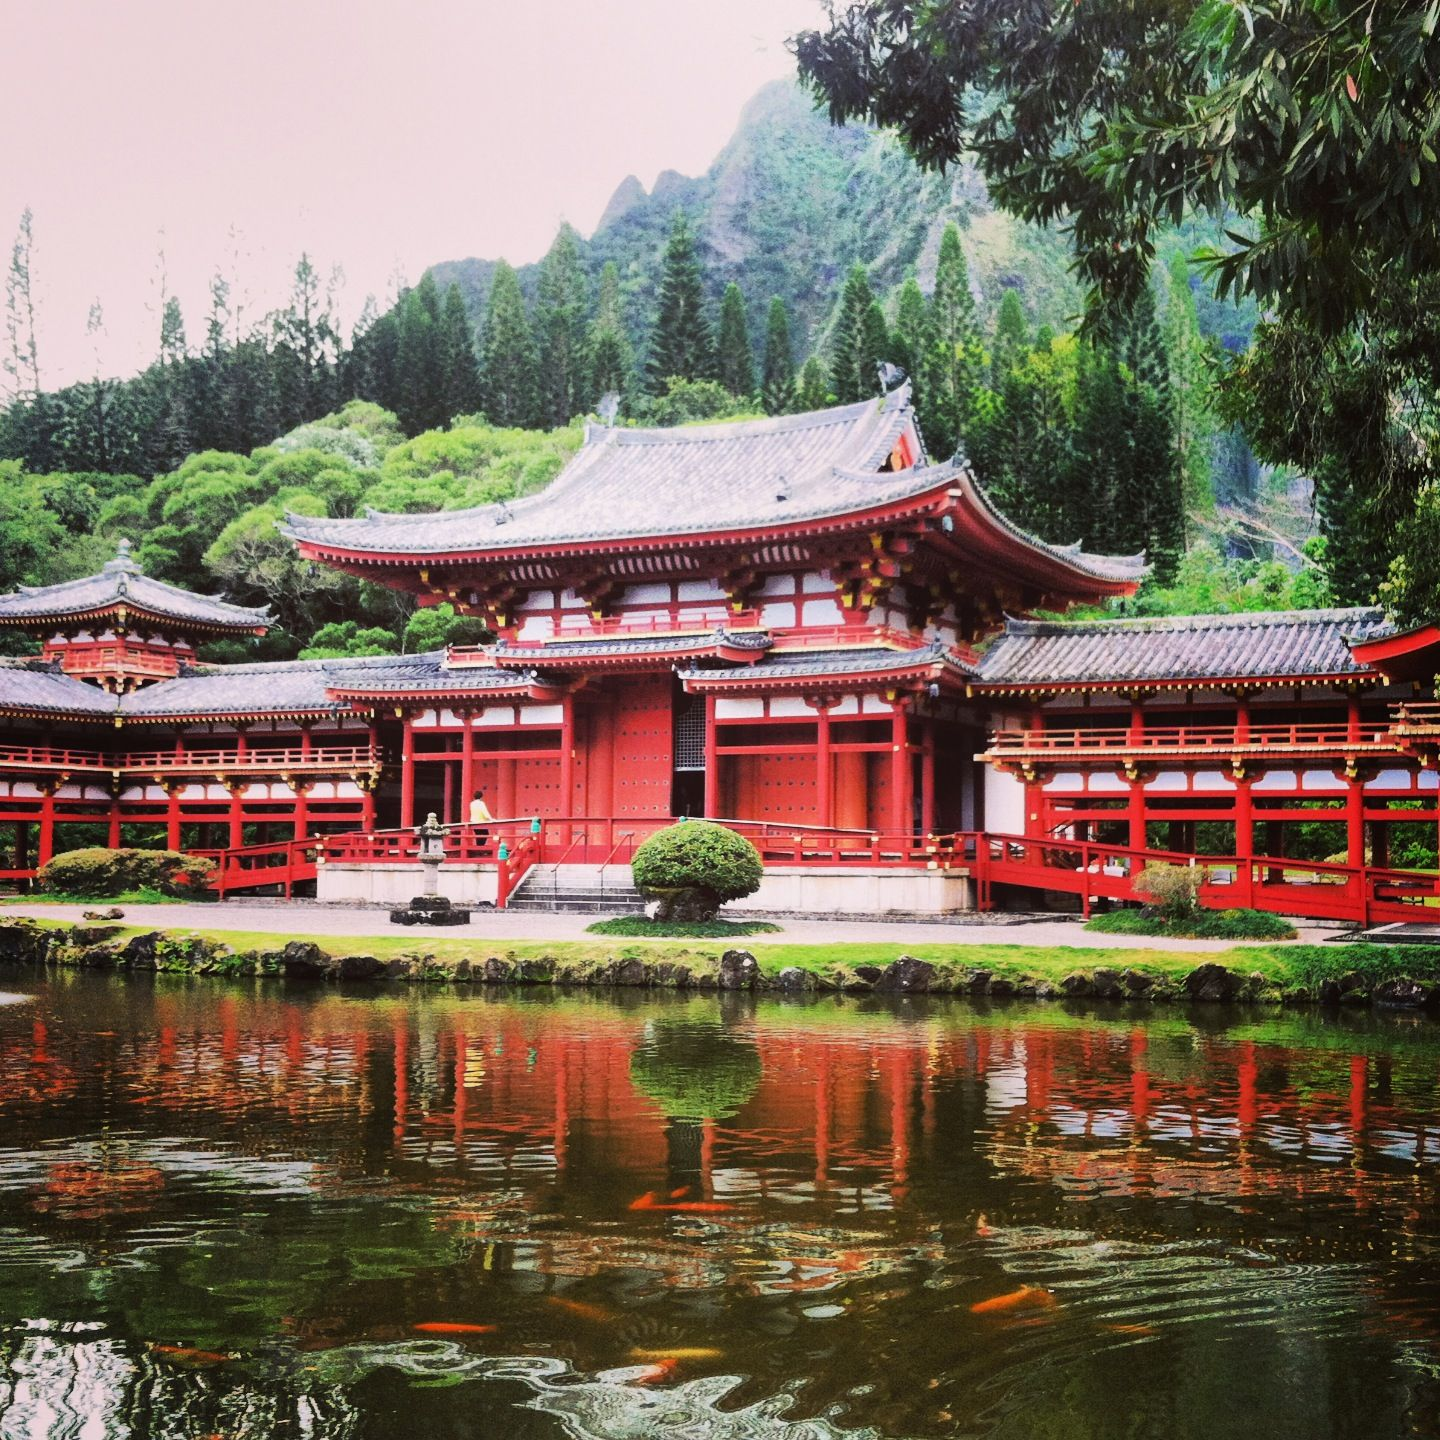 Byodoin Temple Honolulu, Hawaii Actually, it was on the